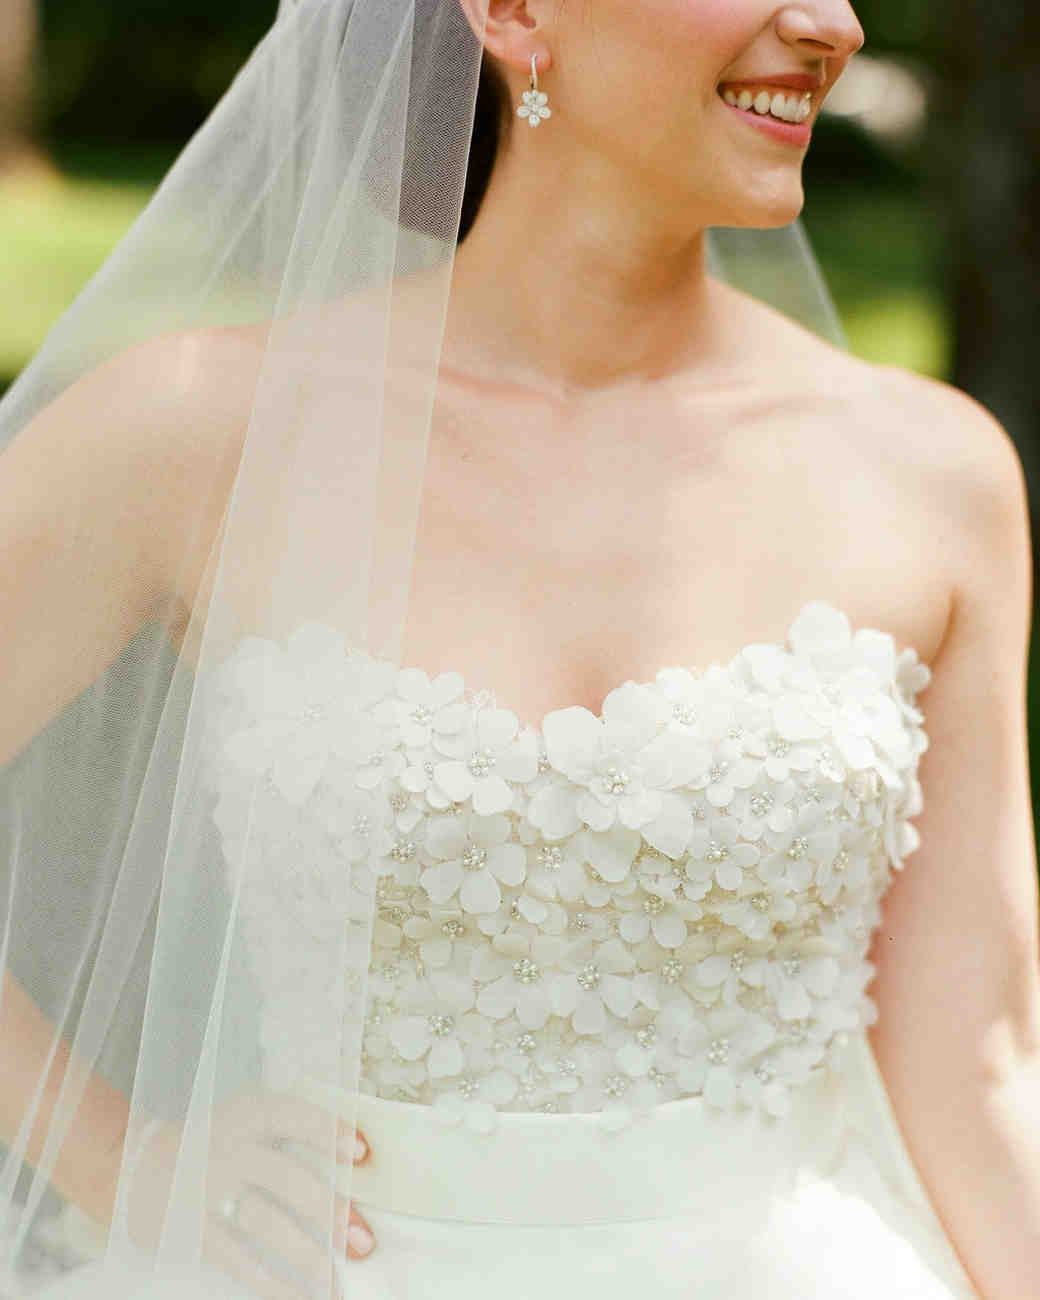 caroline kyle wedding bodice